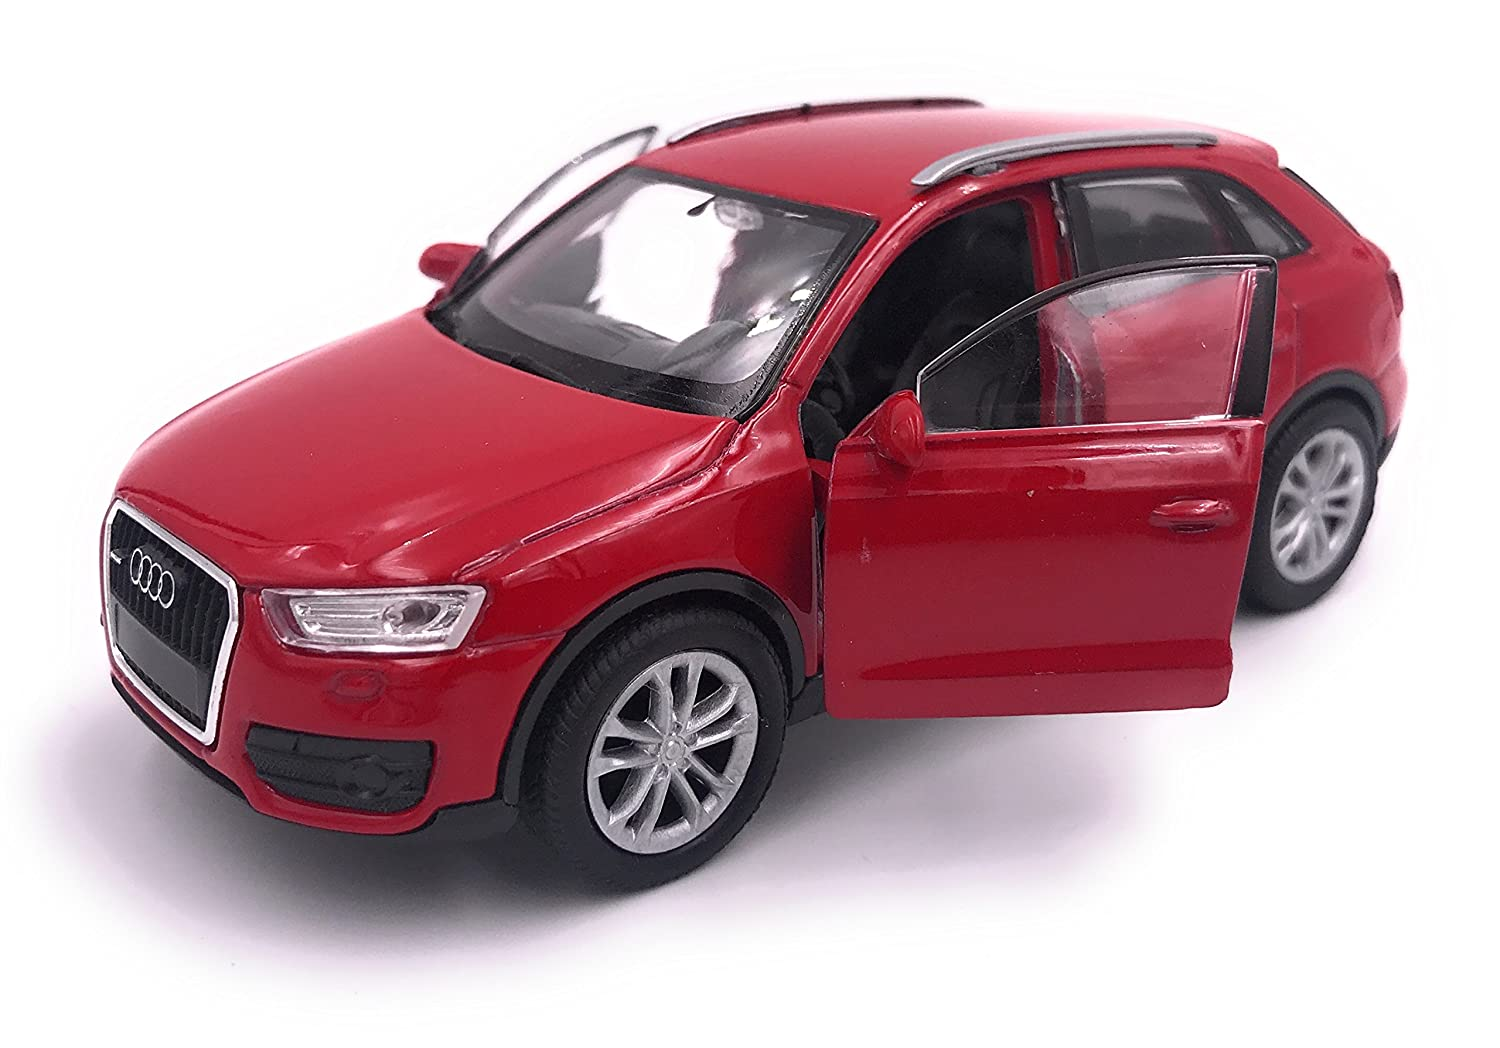 H-Customs Welly Audi Q3 Model Car Licenza Scala 1:34 Colore Casuale hcmq3blister